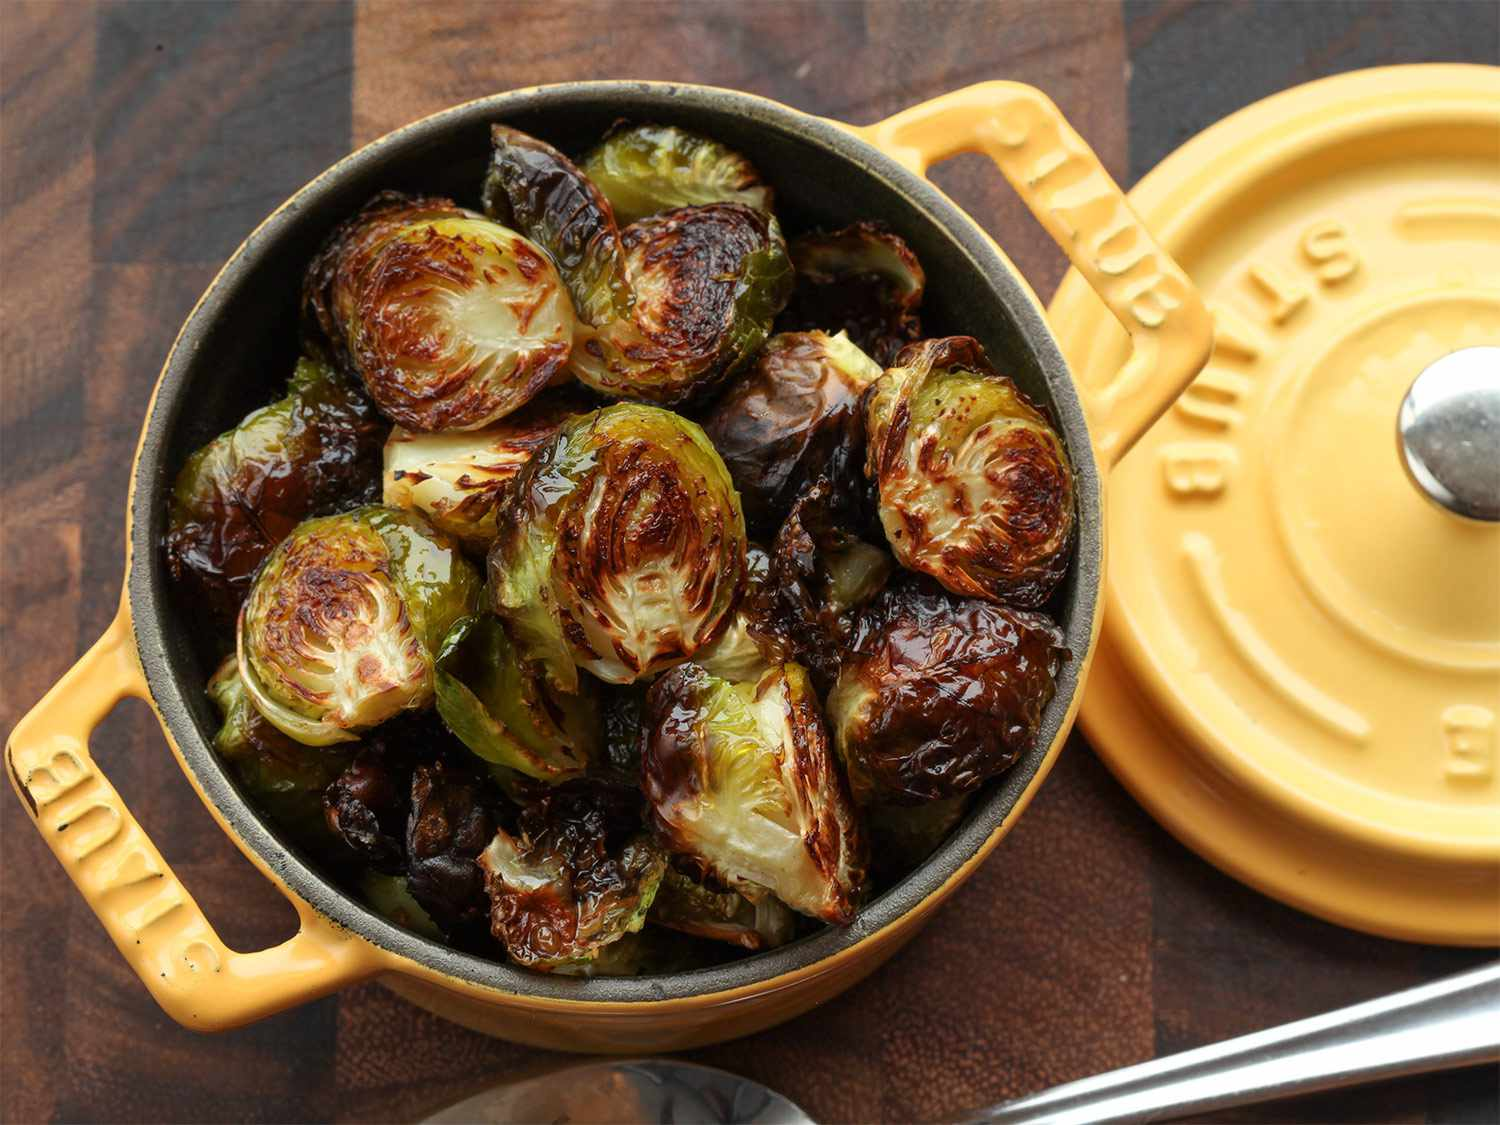 20151031-thanksgiving-brussels-sprouts-recipe-roundup-01.jpg